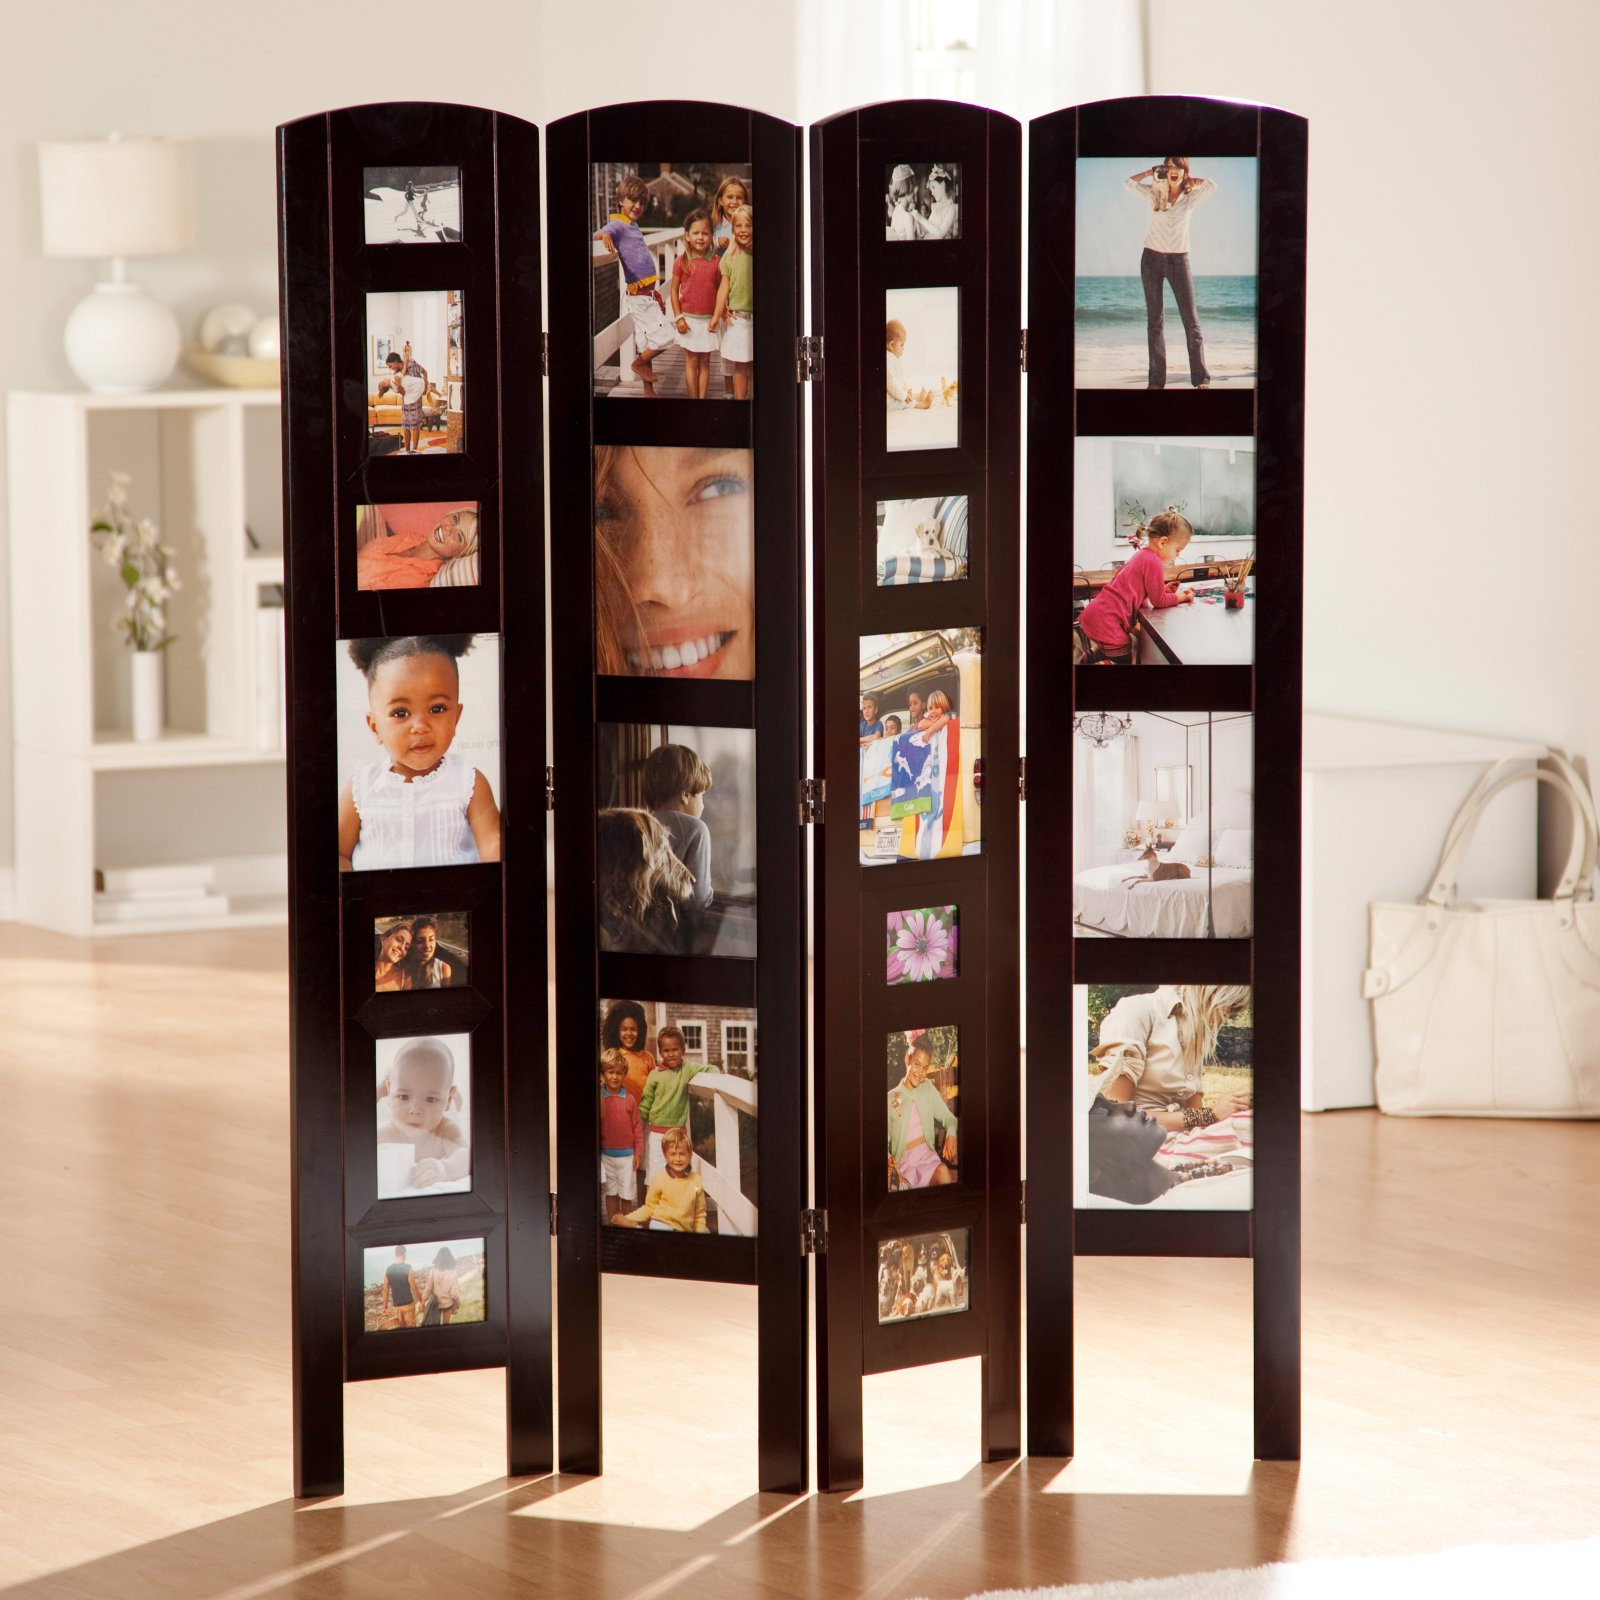 Memories Photo Frame Room Divider - Rosewood 4 Panel